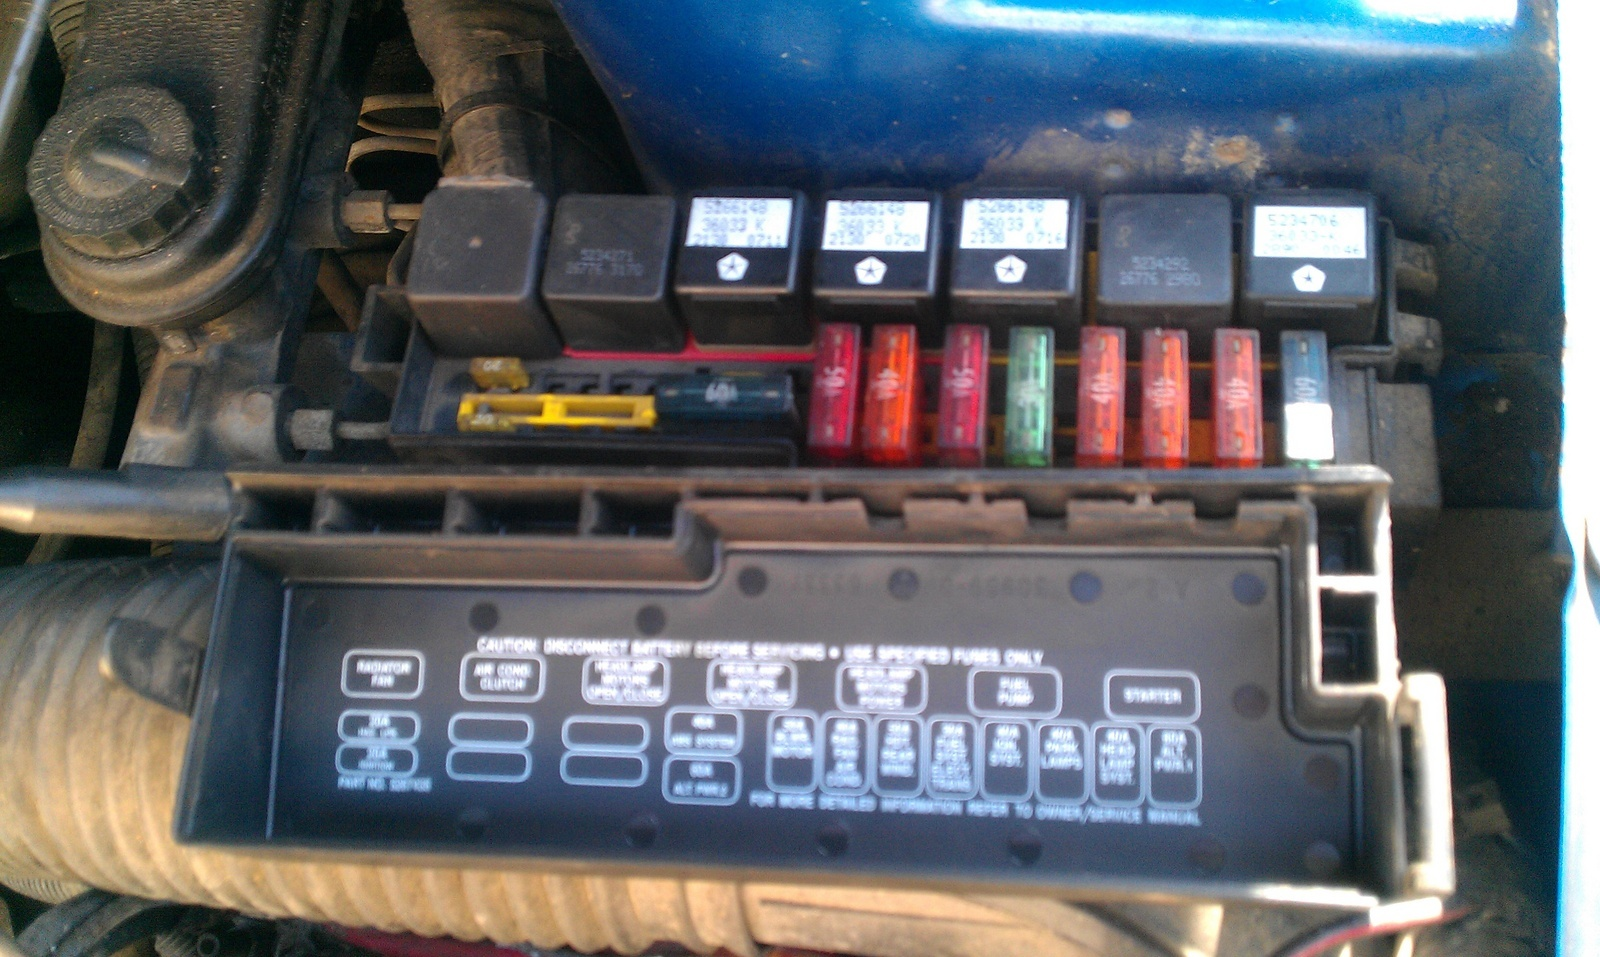 Fuse Box Diagram For 1989 Ford Bronco 2 Layout Wiring Diagrams 94 Aerostar Dodge Daytona Questions My Fuel Pump Stays On After I 1994